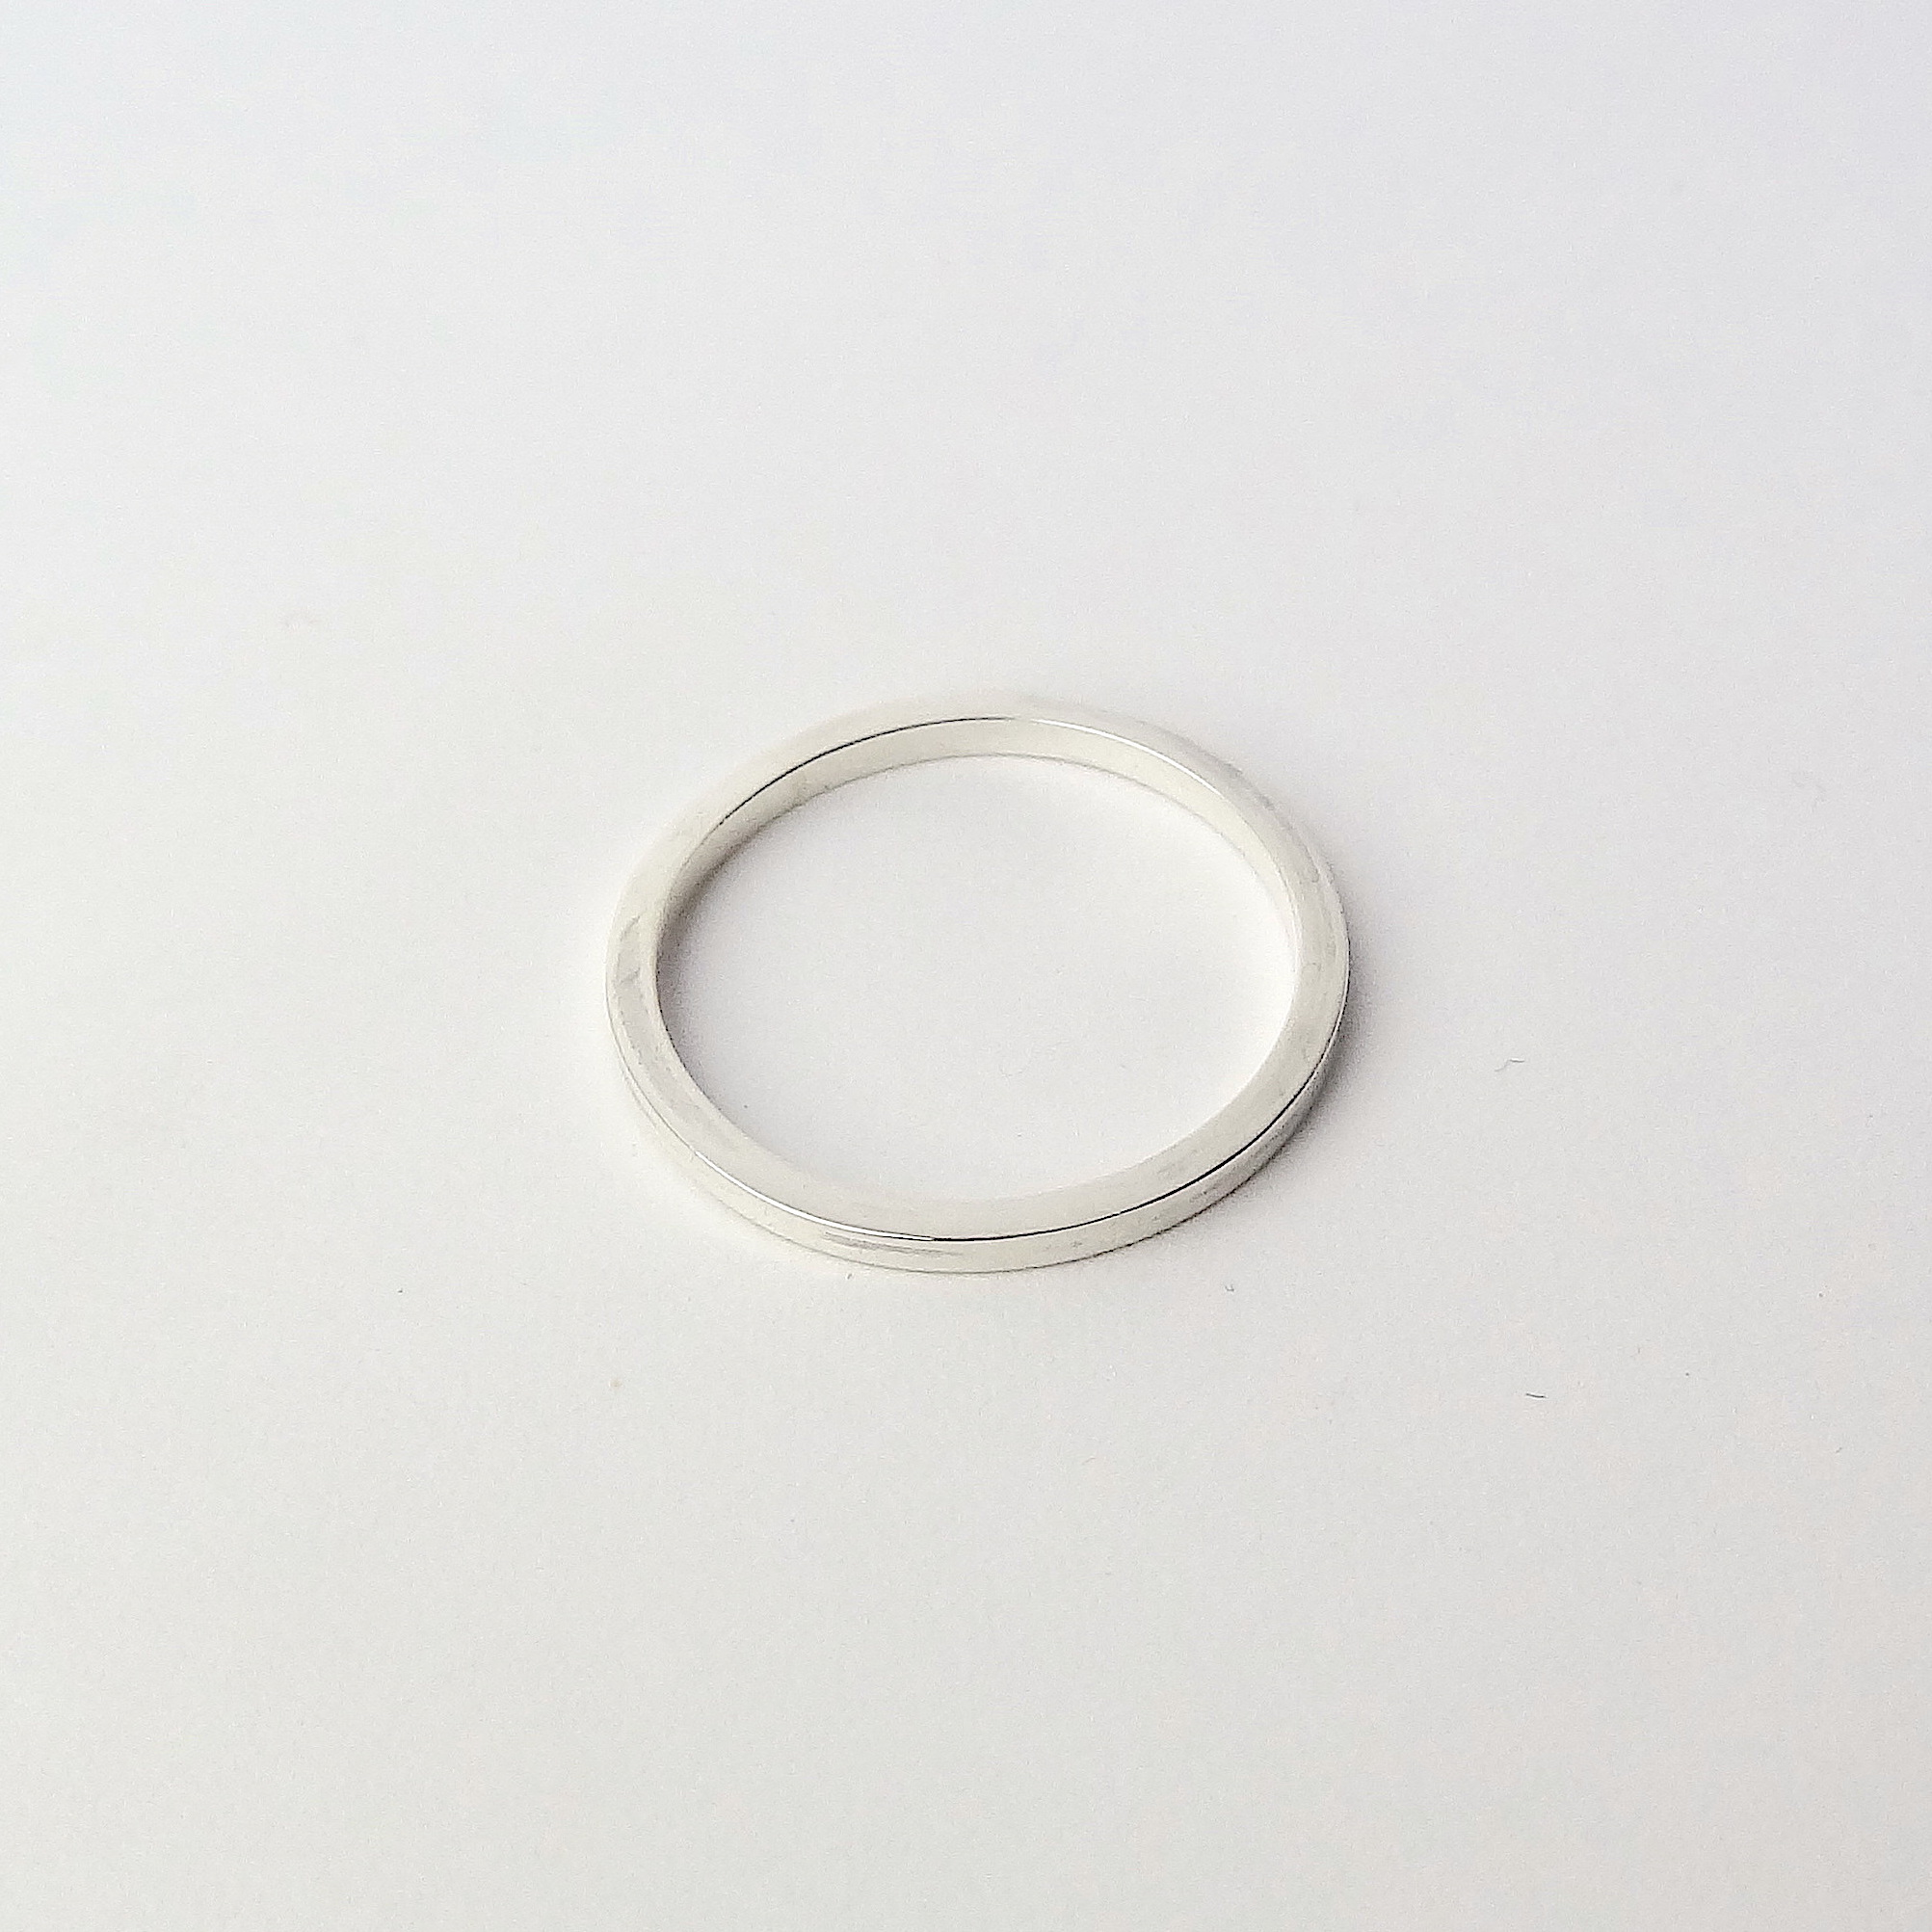 ring simple thin square wire silver.JPG